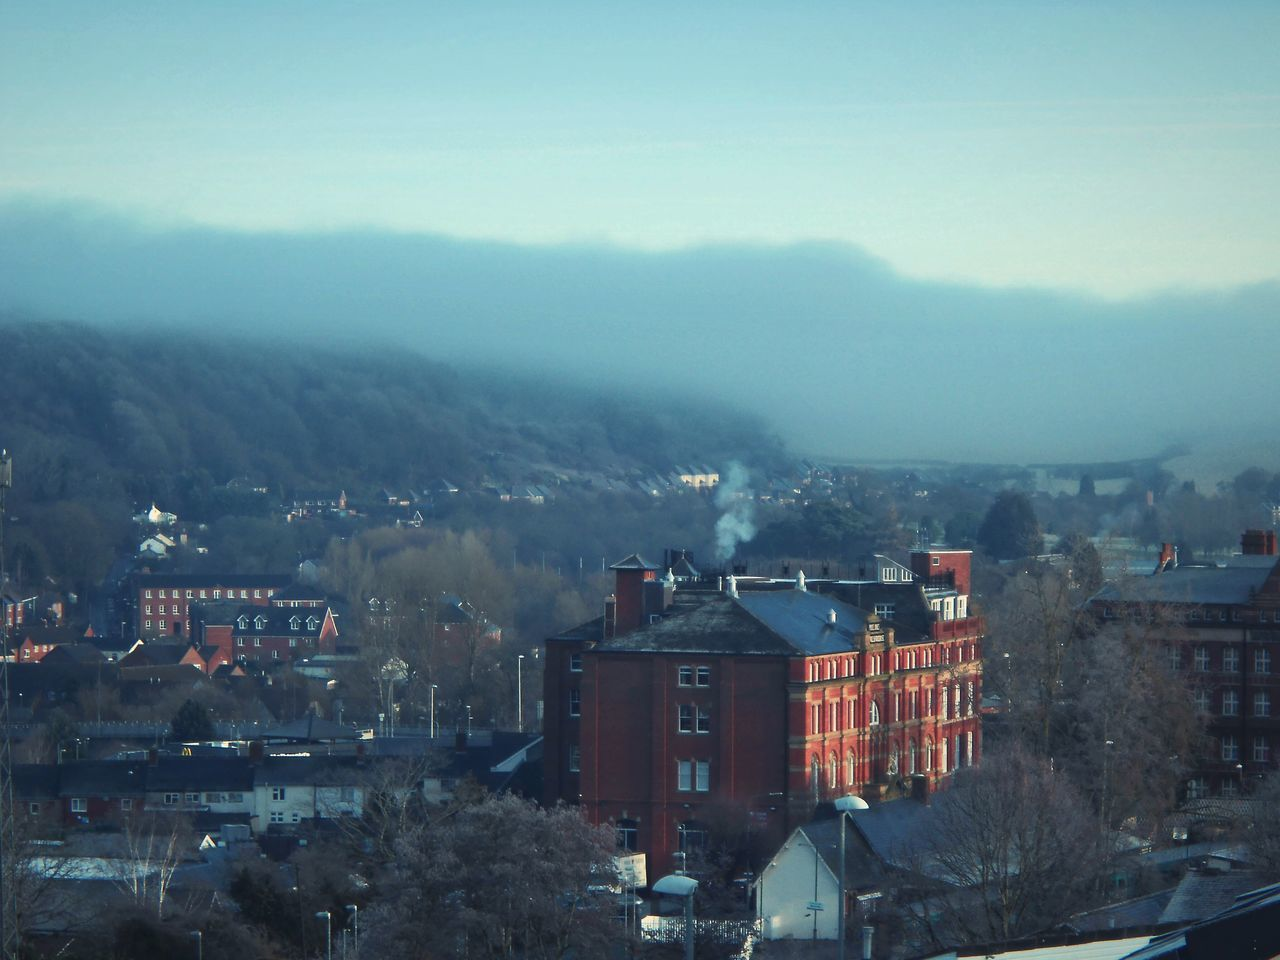 ... Newtown Powys , some other Winter ... Architecture Built Structure Building Exterior House Smoke - Physical Structure Outdoors Town Warehouse Brick Building Victorian Looking Down Fog Haze Sunny Wales Cityscape Cloud Hills город здания облако туман